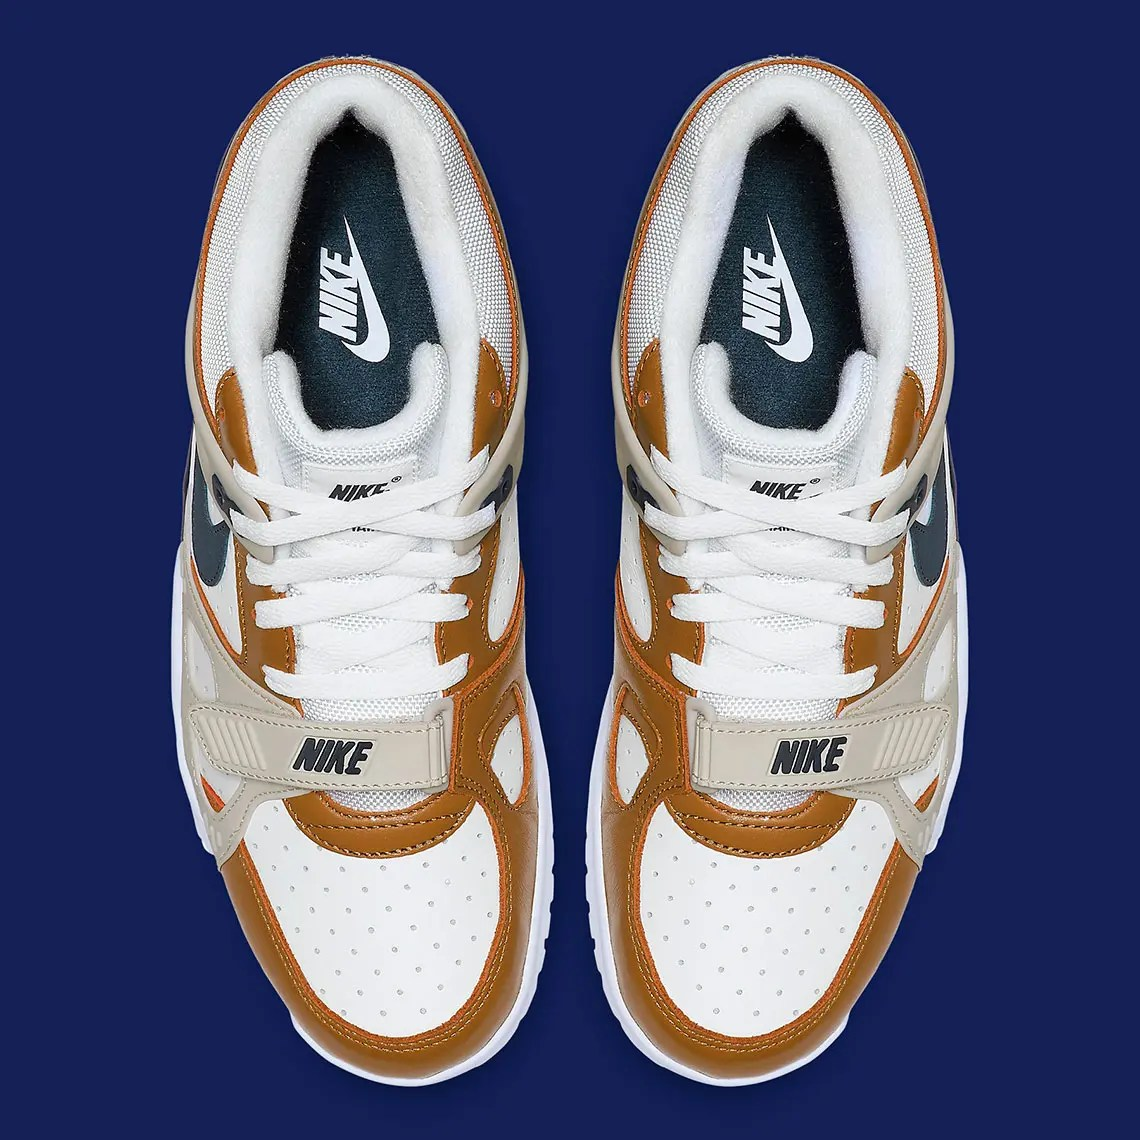 nike-air-trainer-3-medicine-ball-CJ1436-100-4